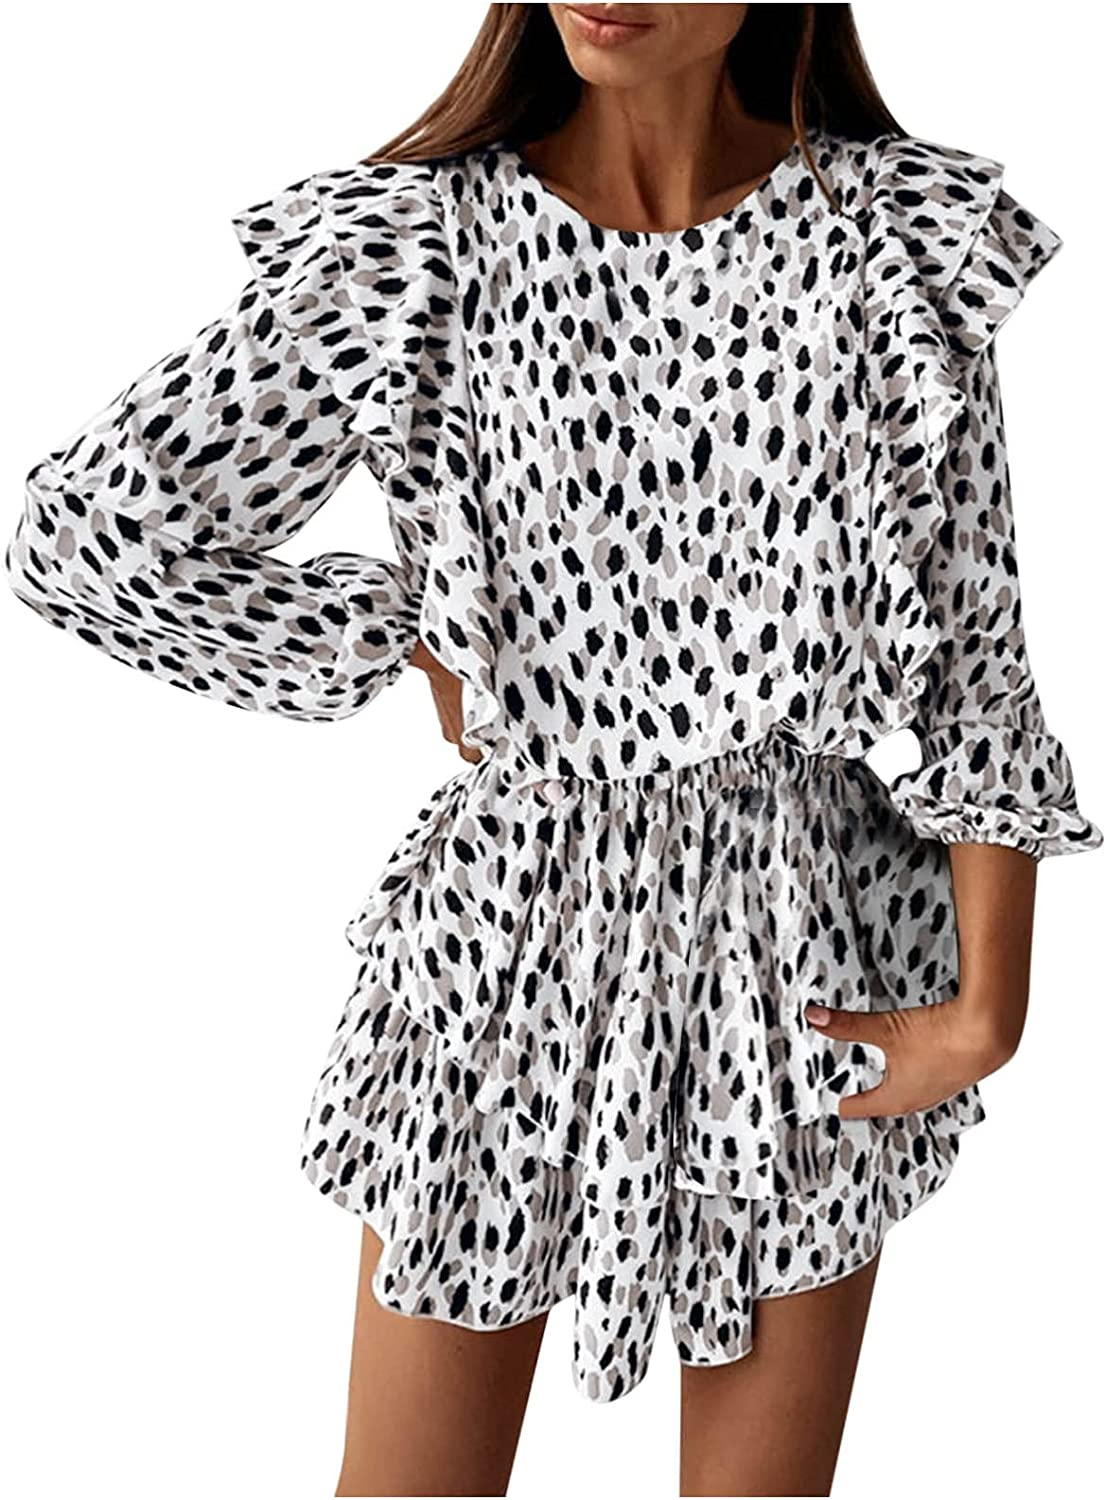 Ruched Dresses for Women, Ladies Loose Round Neck Leopard Print Floral Ruffle Leaf Skirt Dress